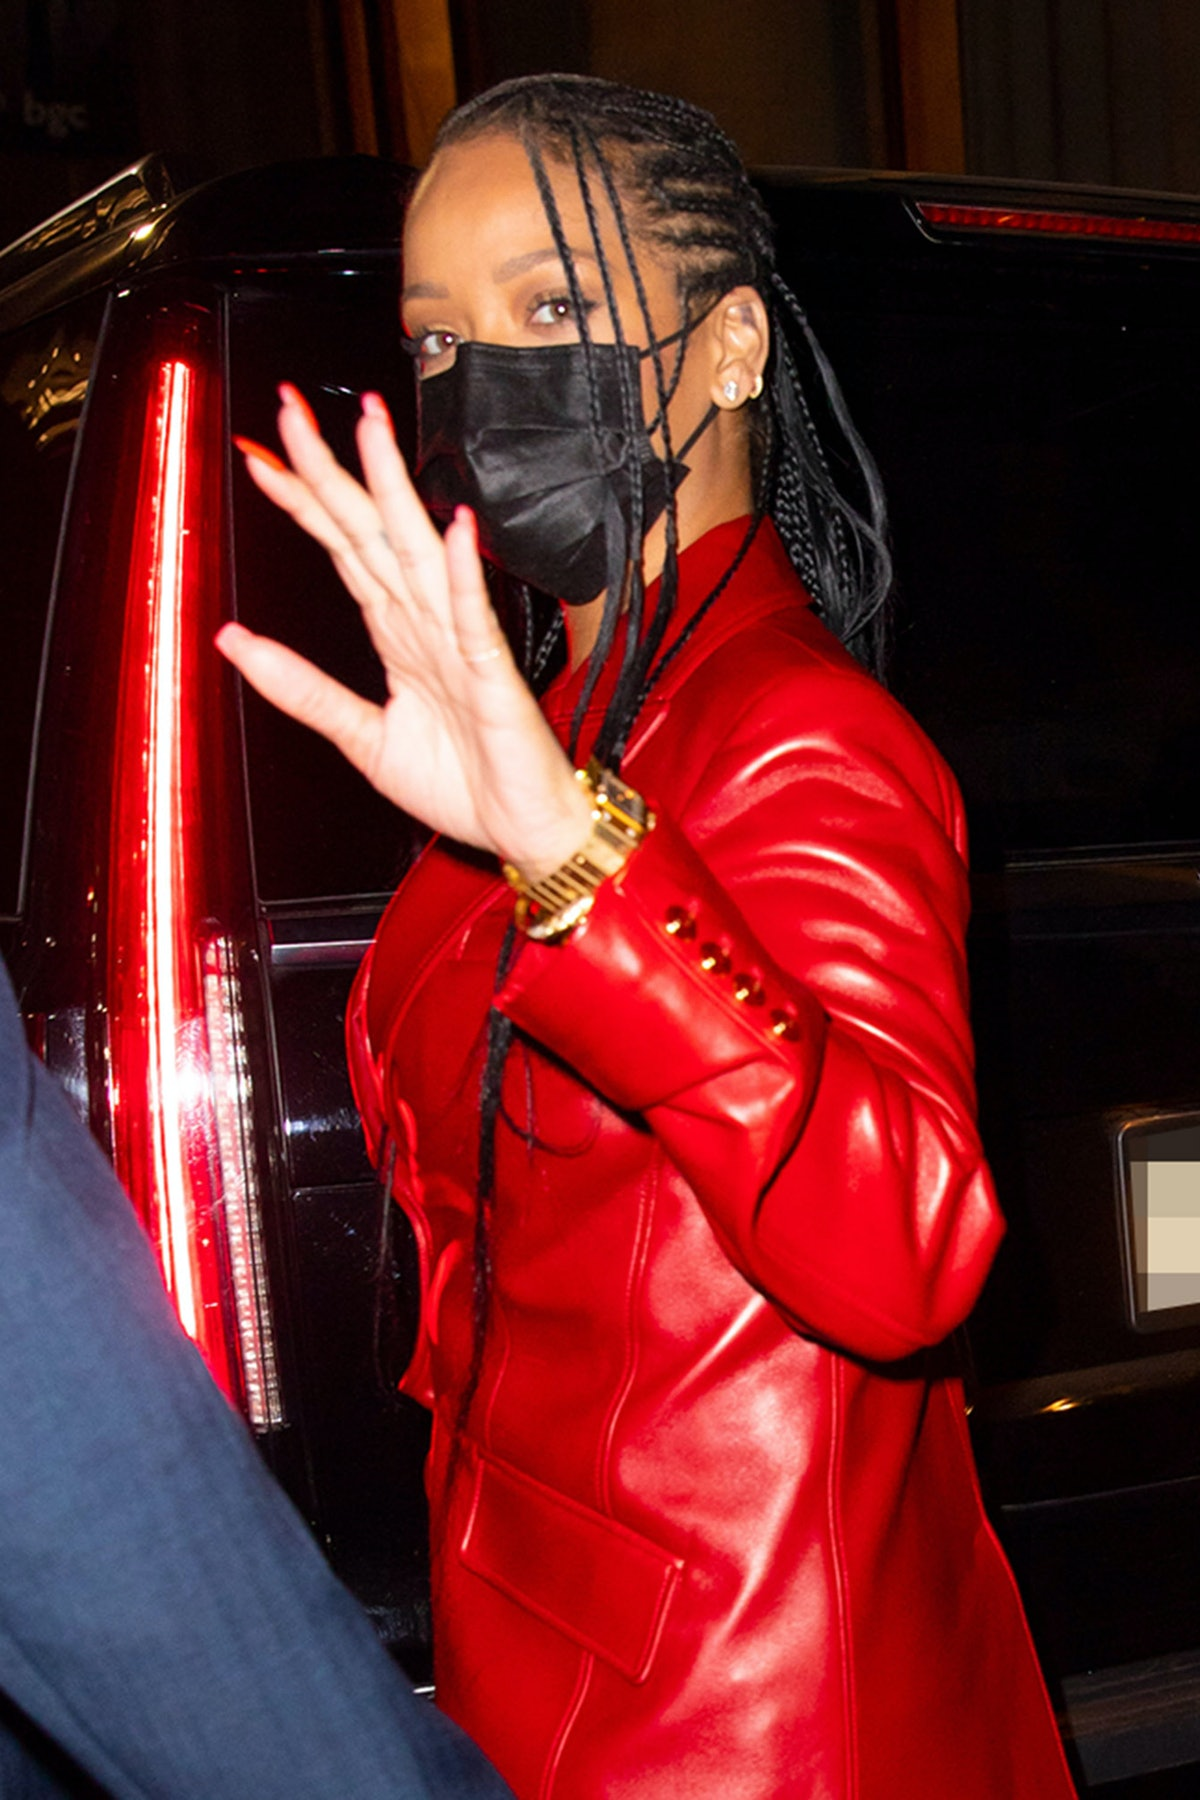 NEW YORK - APRIL 06: Rihanna is seen at Nobu on April 6, 2021 in New York City. (Photo by Gotham/GC images)